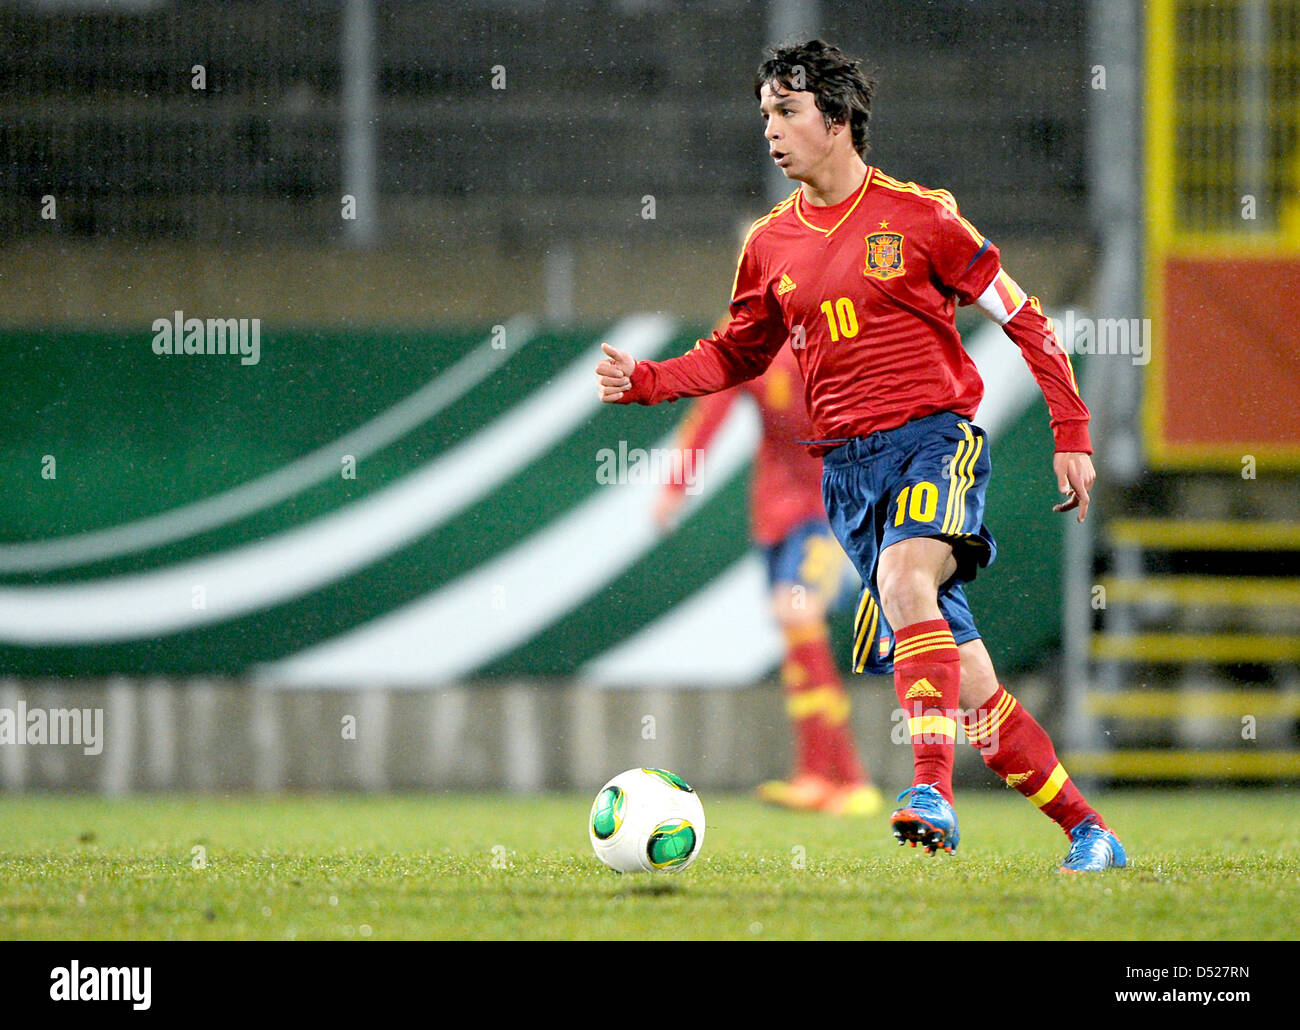 f8601bafa Spain s Oliver Torres in action during the U-19 international soccer match  between Germany and